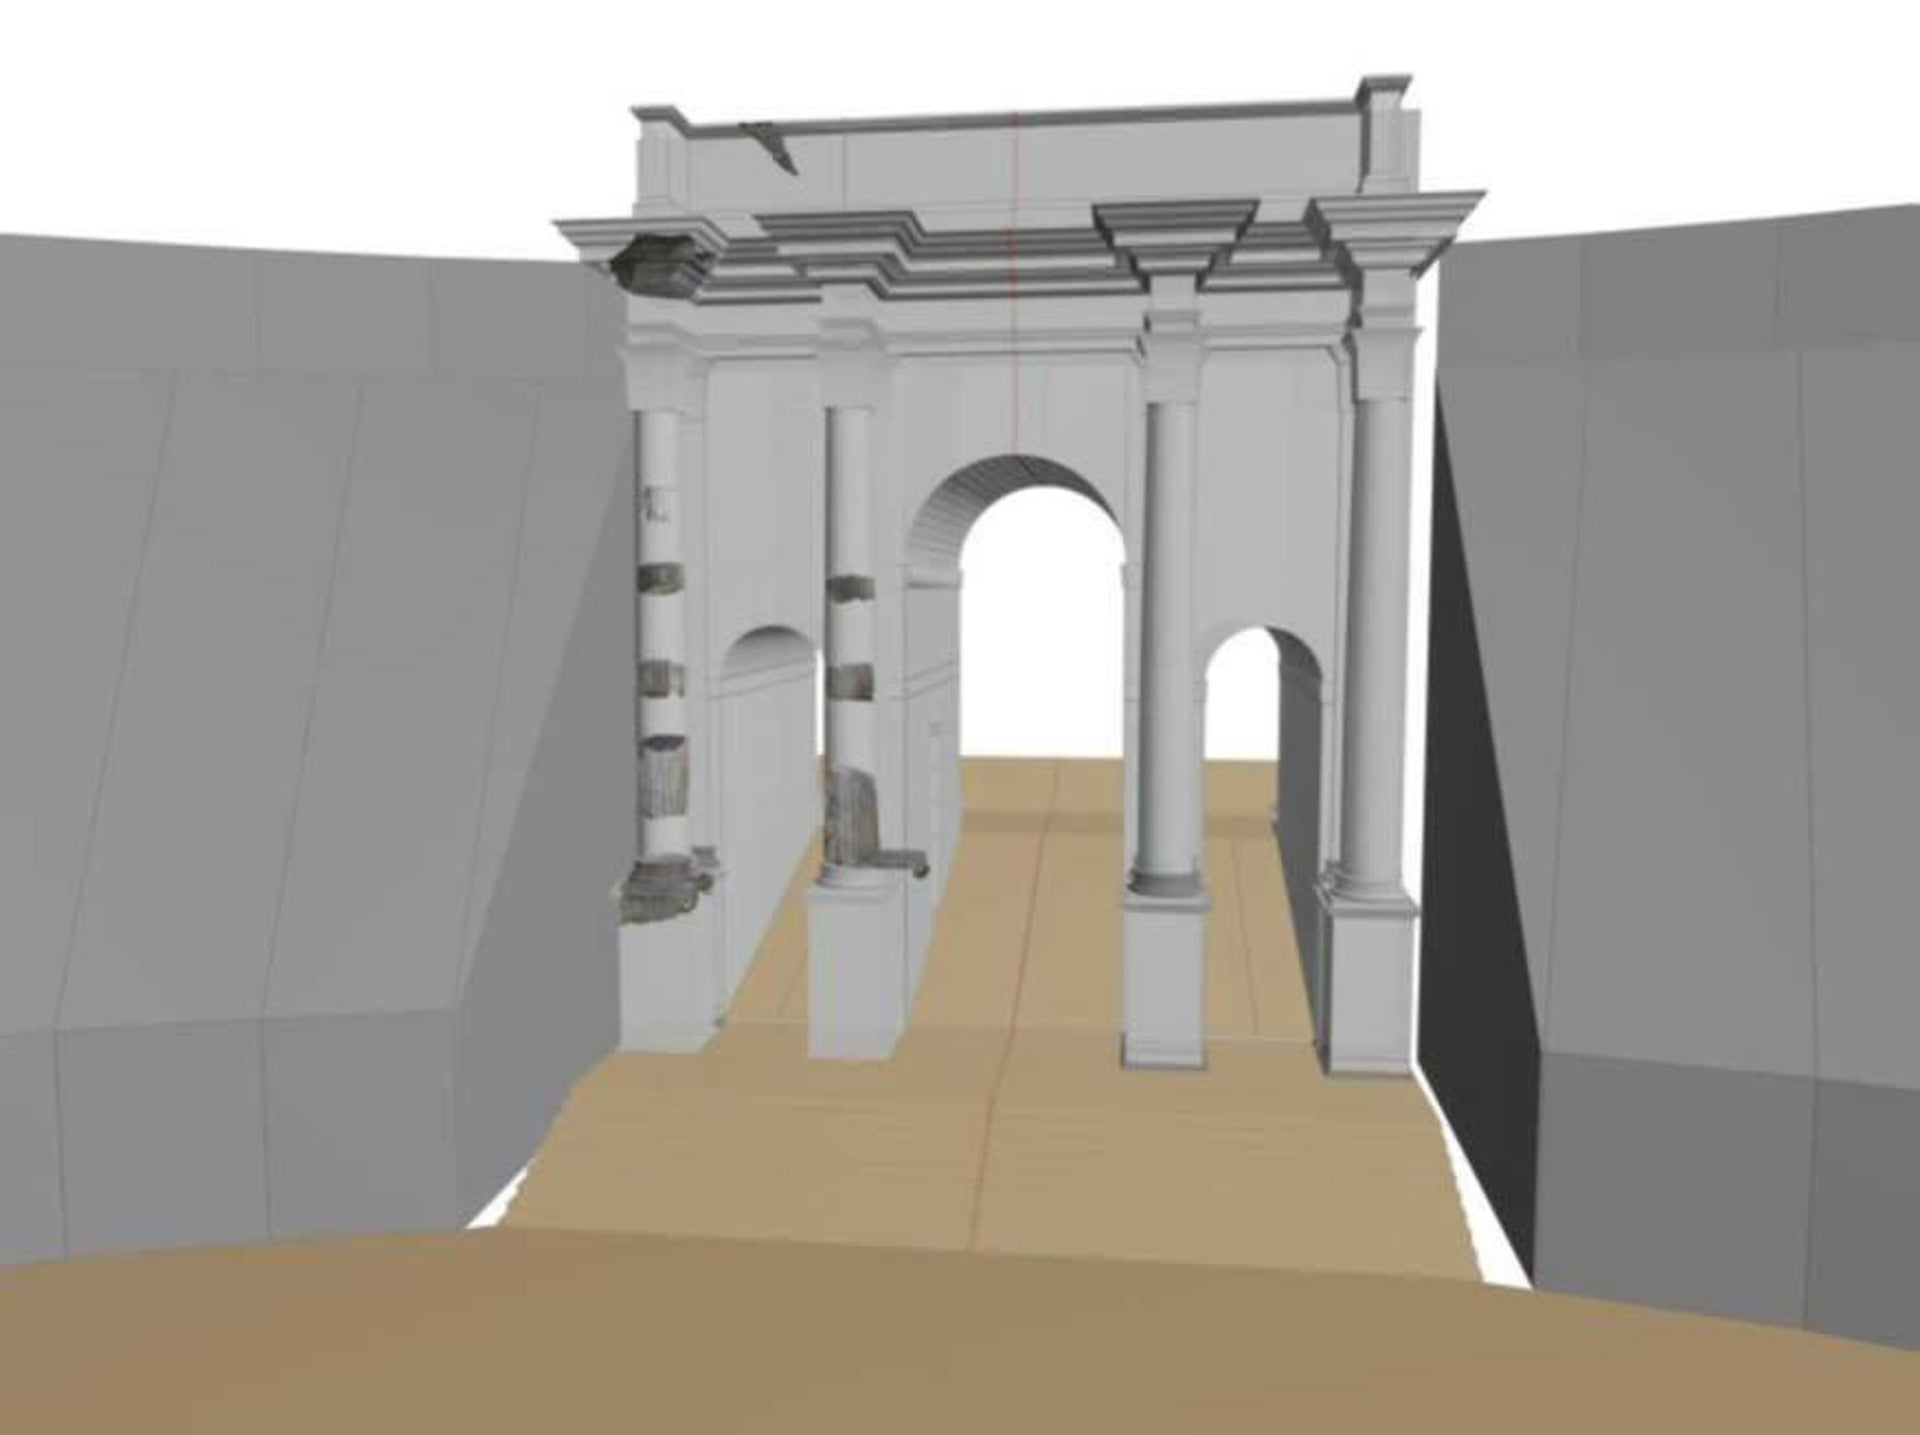 Simulation of the second Arch of Titus, which functioned as a monumental entrance to the Circus Maximus and was used in processions and military parades.